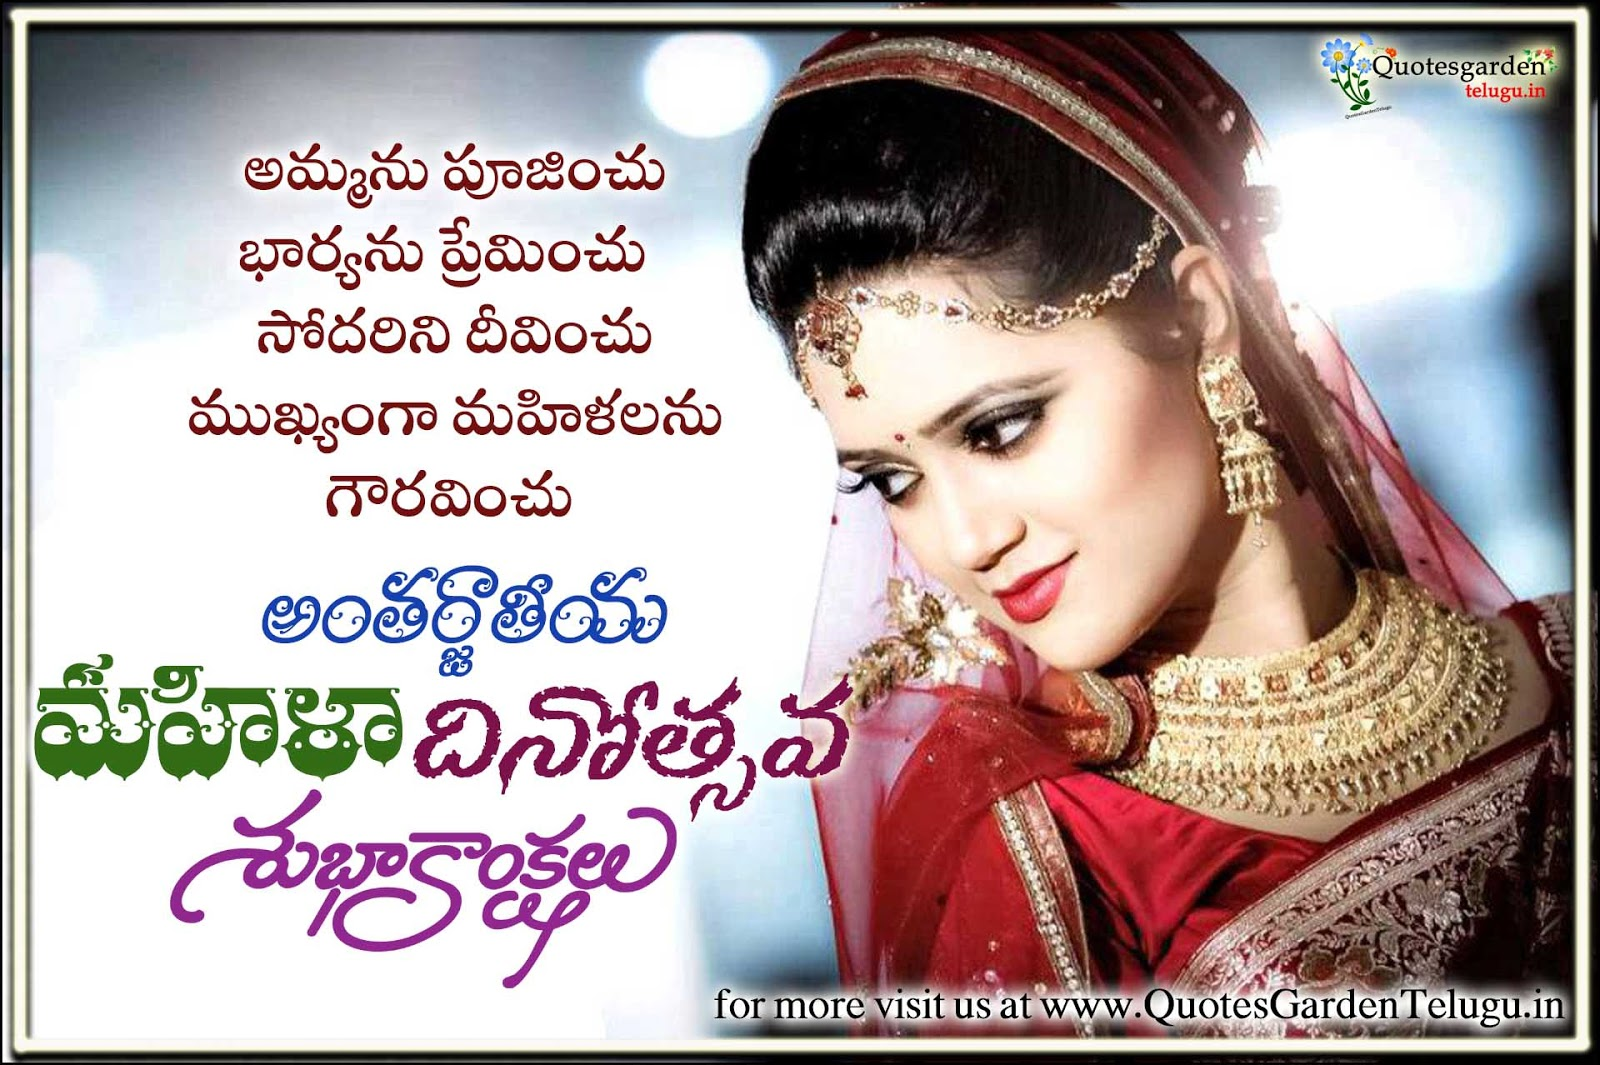 Womensday Telugu Quotes Greetings Wishes Images Quotes Garden